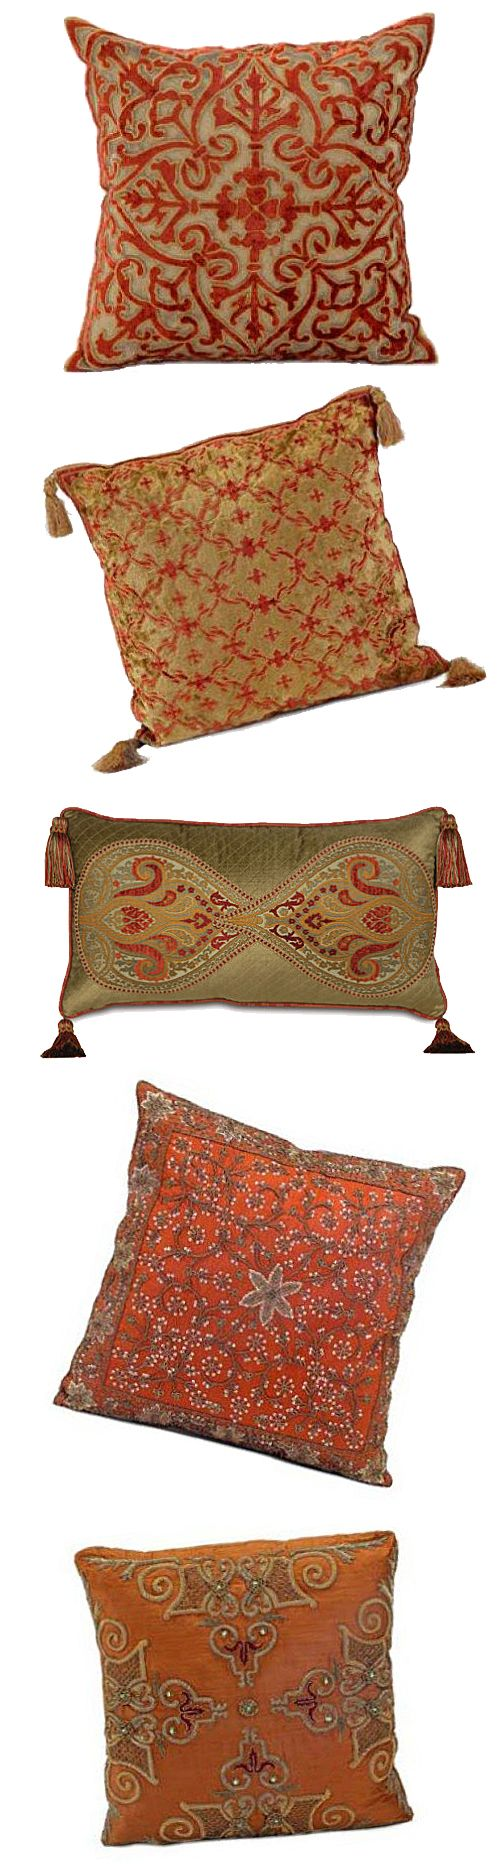 India pied-à-terre   Spice Patterned Pillows